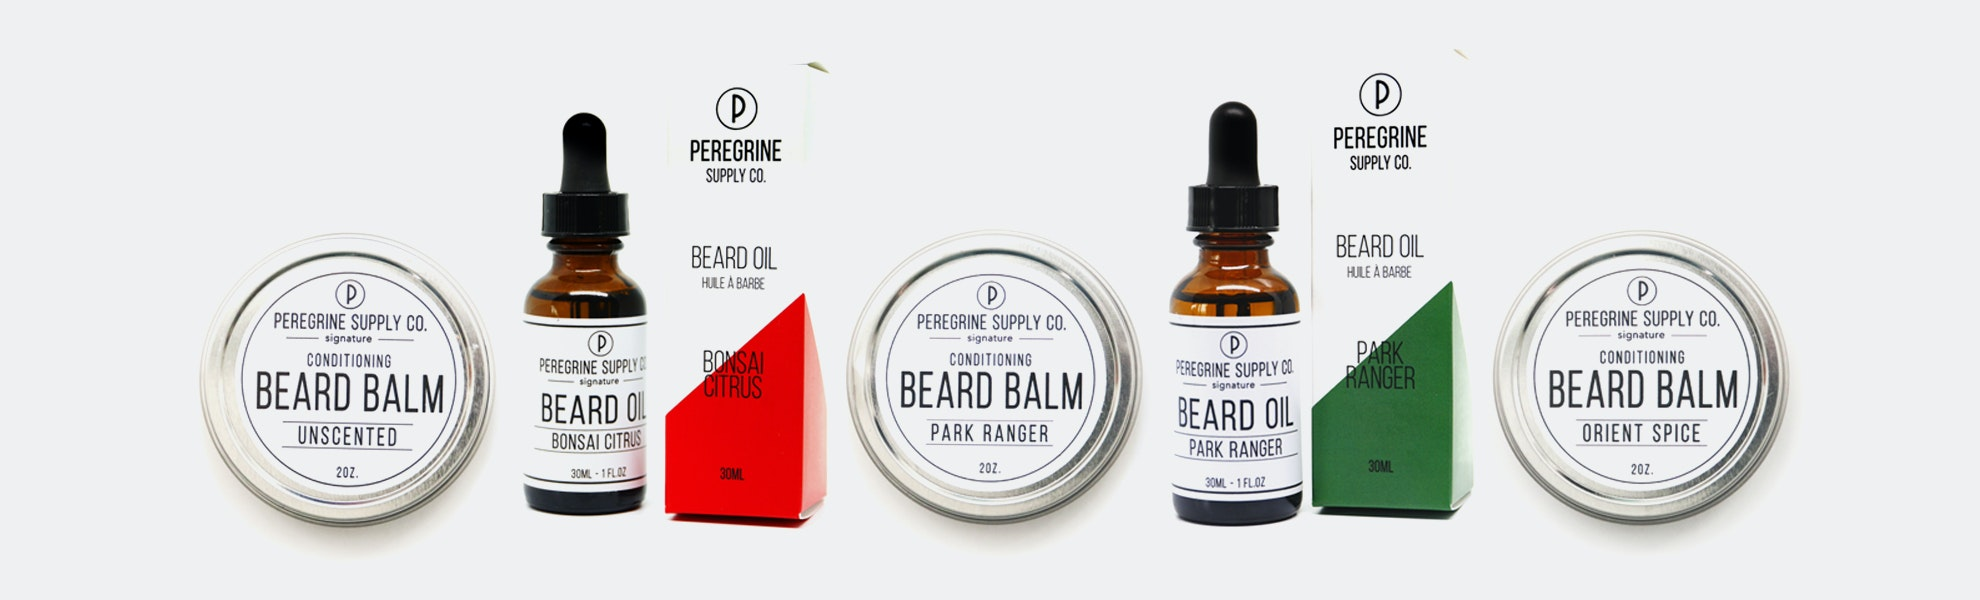 Peregrine Supply Co. Solid Beard Balm & Oil